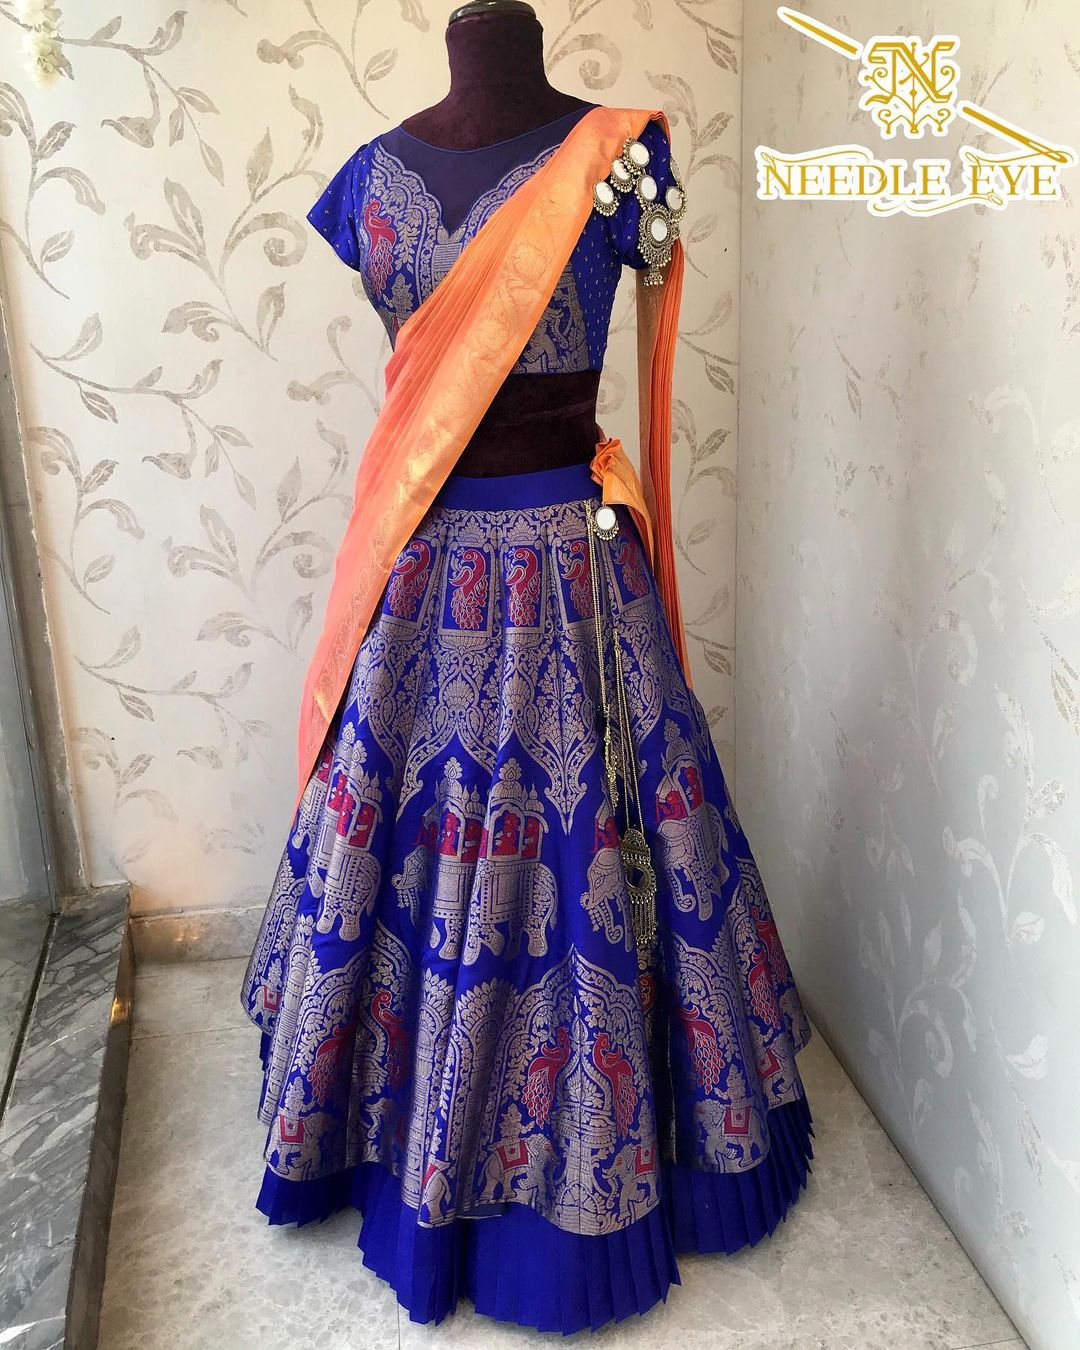 Elegant silk lehenga from Needle Eye boutique. | buy lehenga online | bridal lehenga blouse design | lavender lehenga | 2020-11-24